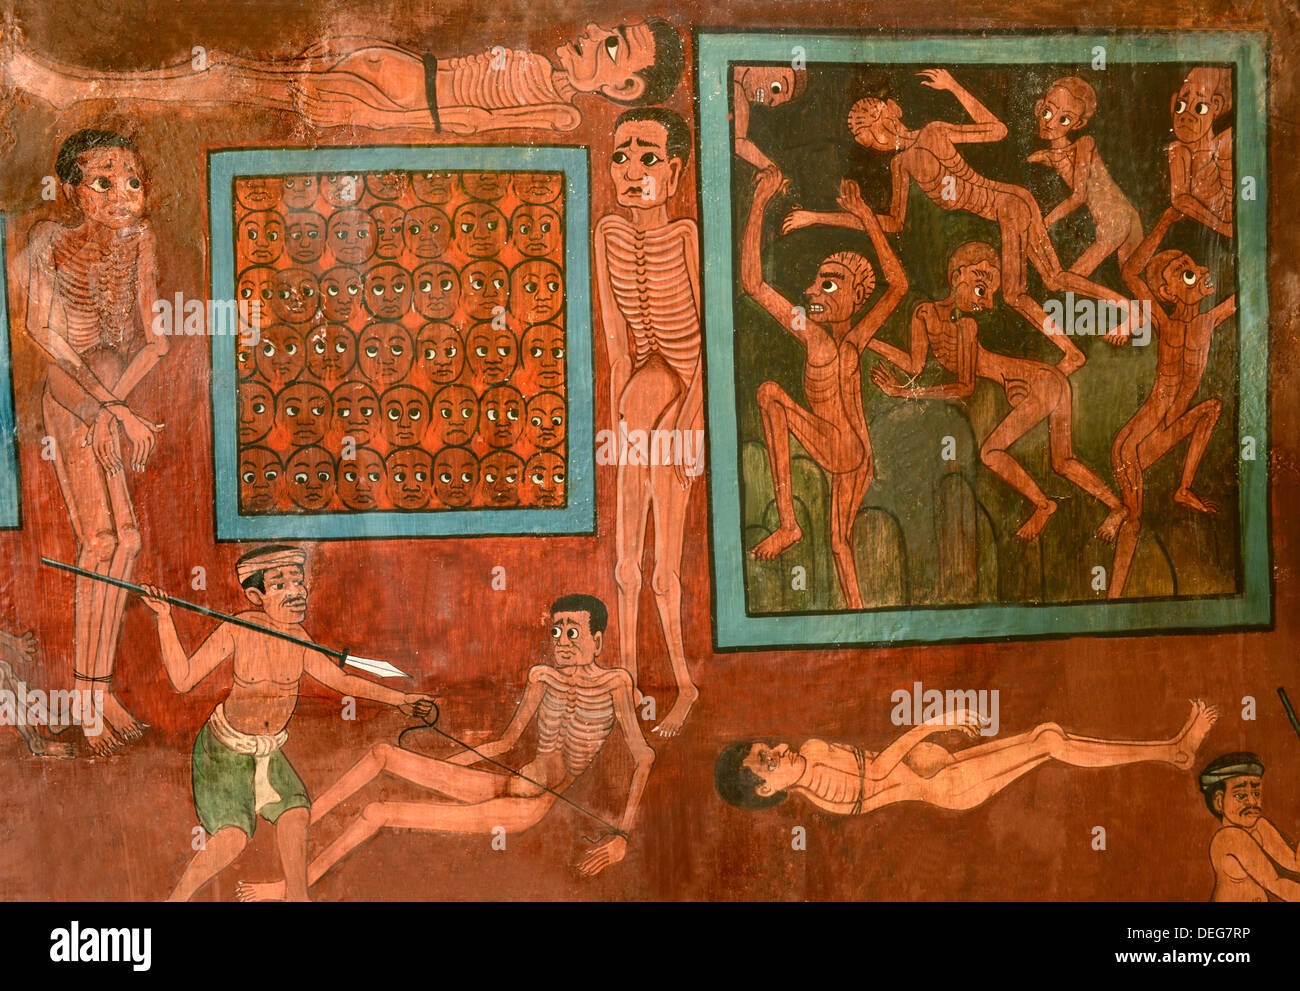 Detail of murals with scenes of hell dating from the late Rattanakosin period, Wat Saket, Bangkok, Thailand, Southeast Asia - Stock Image